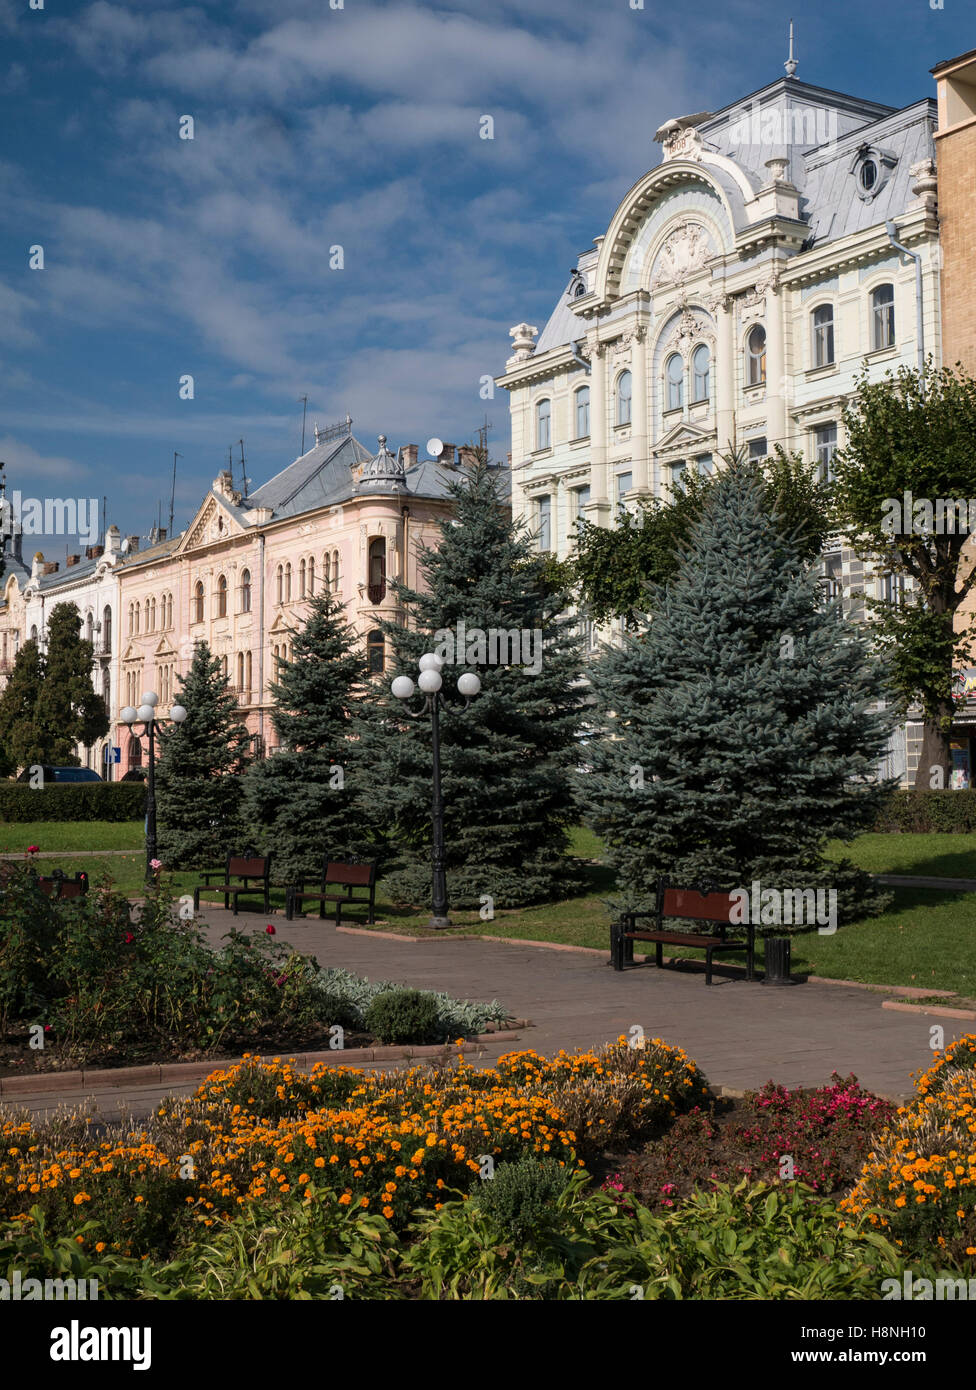 Beautiful buildings surrounding Teatralina Square in Chernivtsi, Ukraine. Pretty flowers are blooming in the foreground - Stock Image